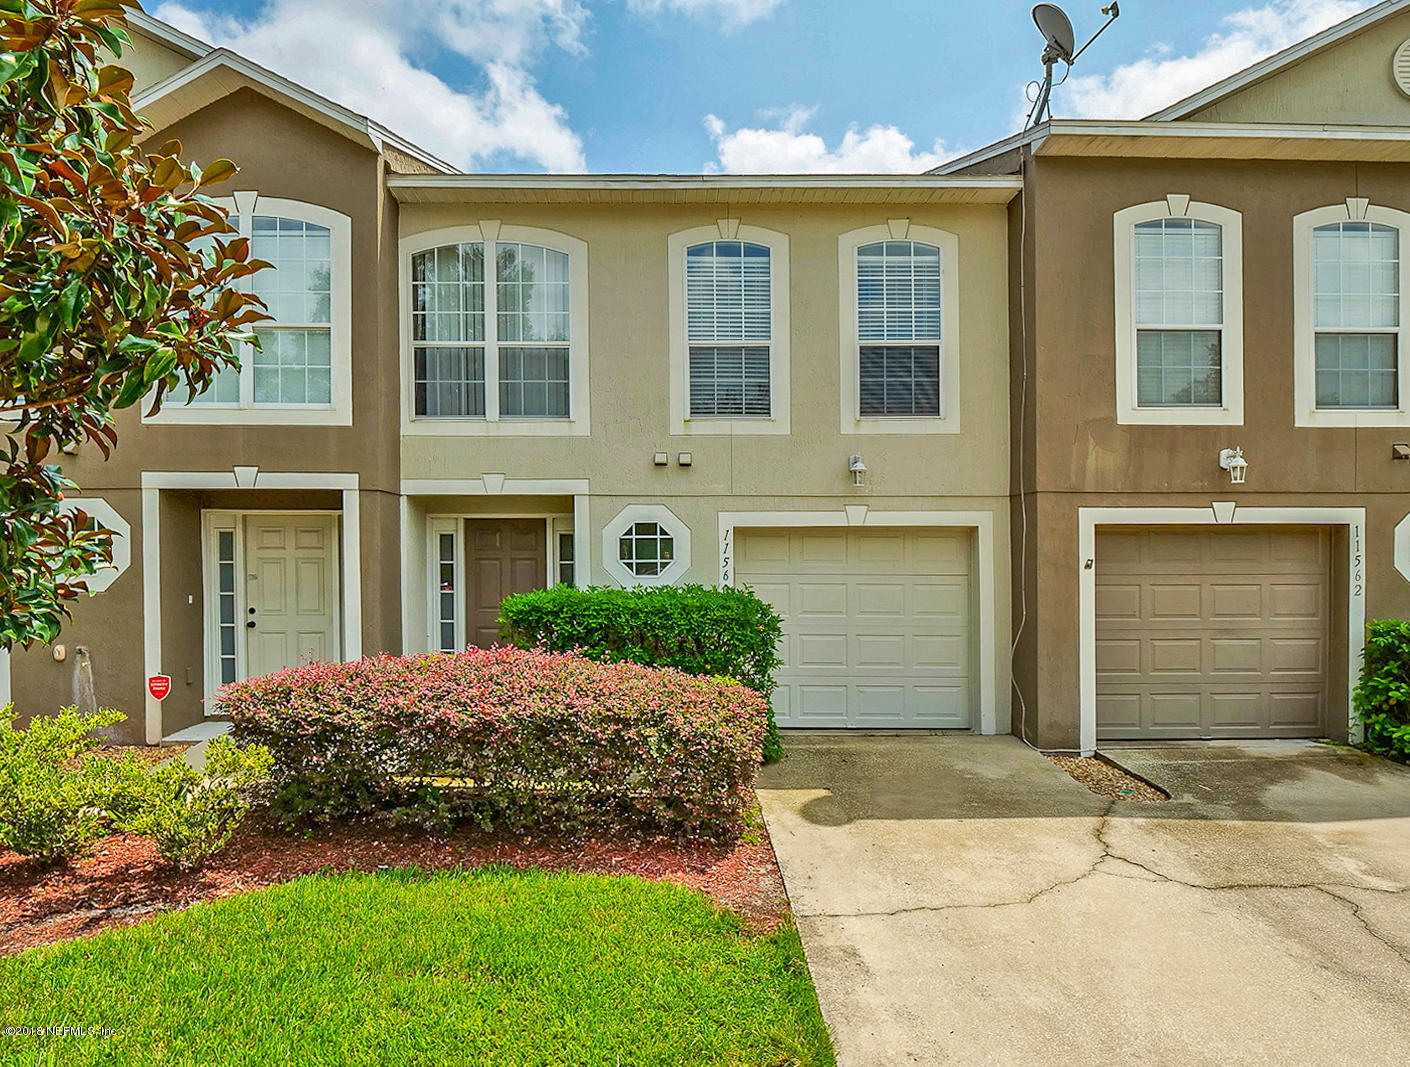 11560 HICKORY OAK, JACKSONVILLE, FLORIDA 32218, 3 Bedrooms Bedrooms, ,2 BathroomsBathrooms,Residential - townhome,For sale,HICKORY OAK,964793